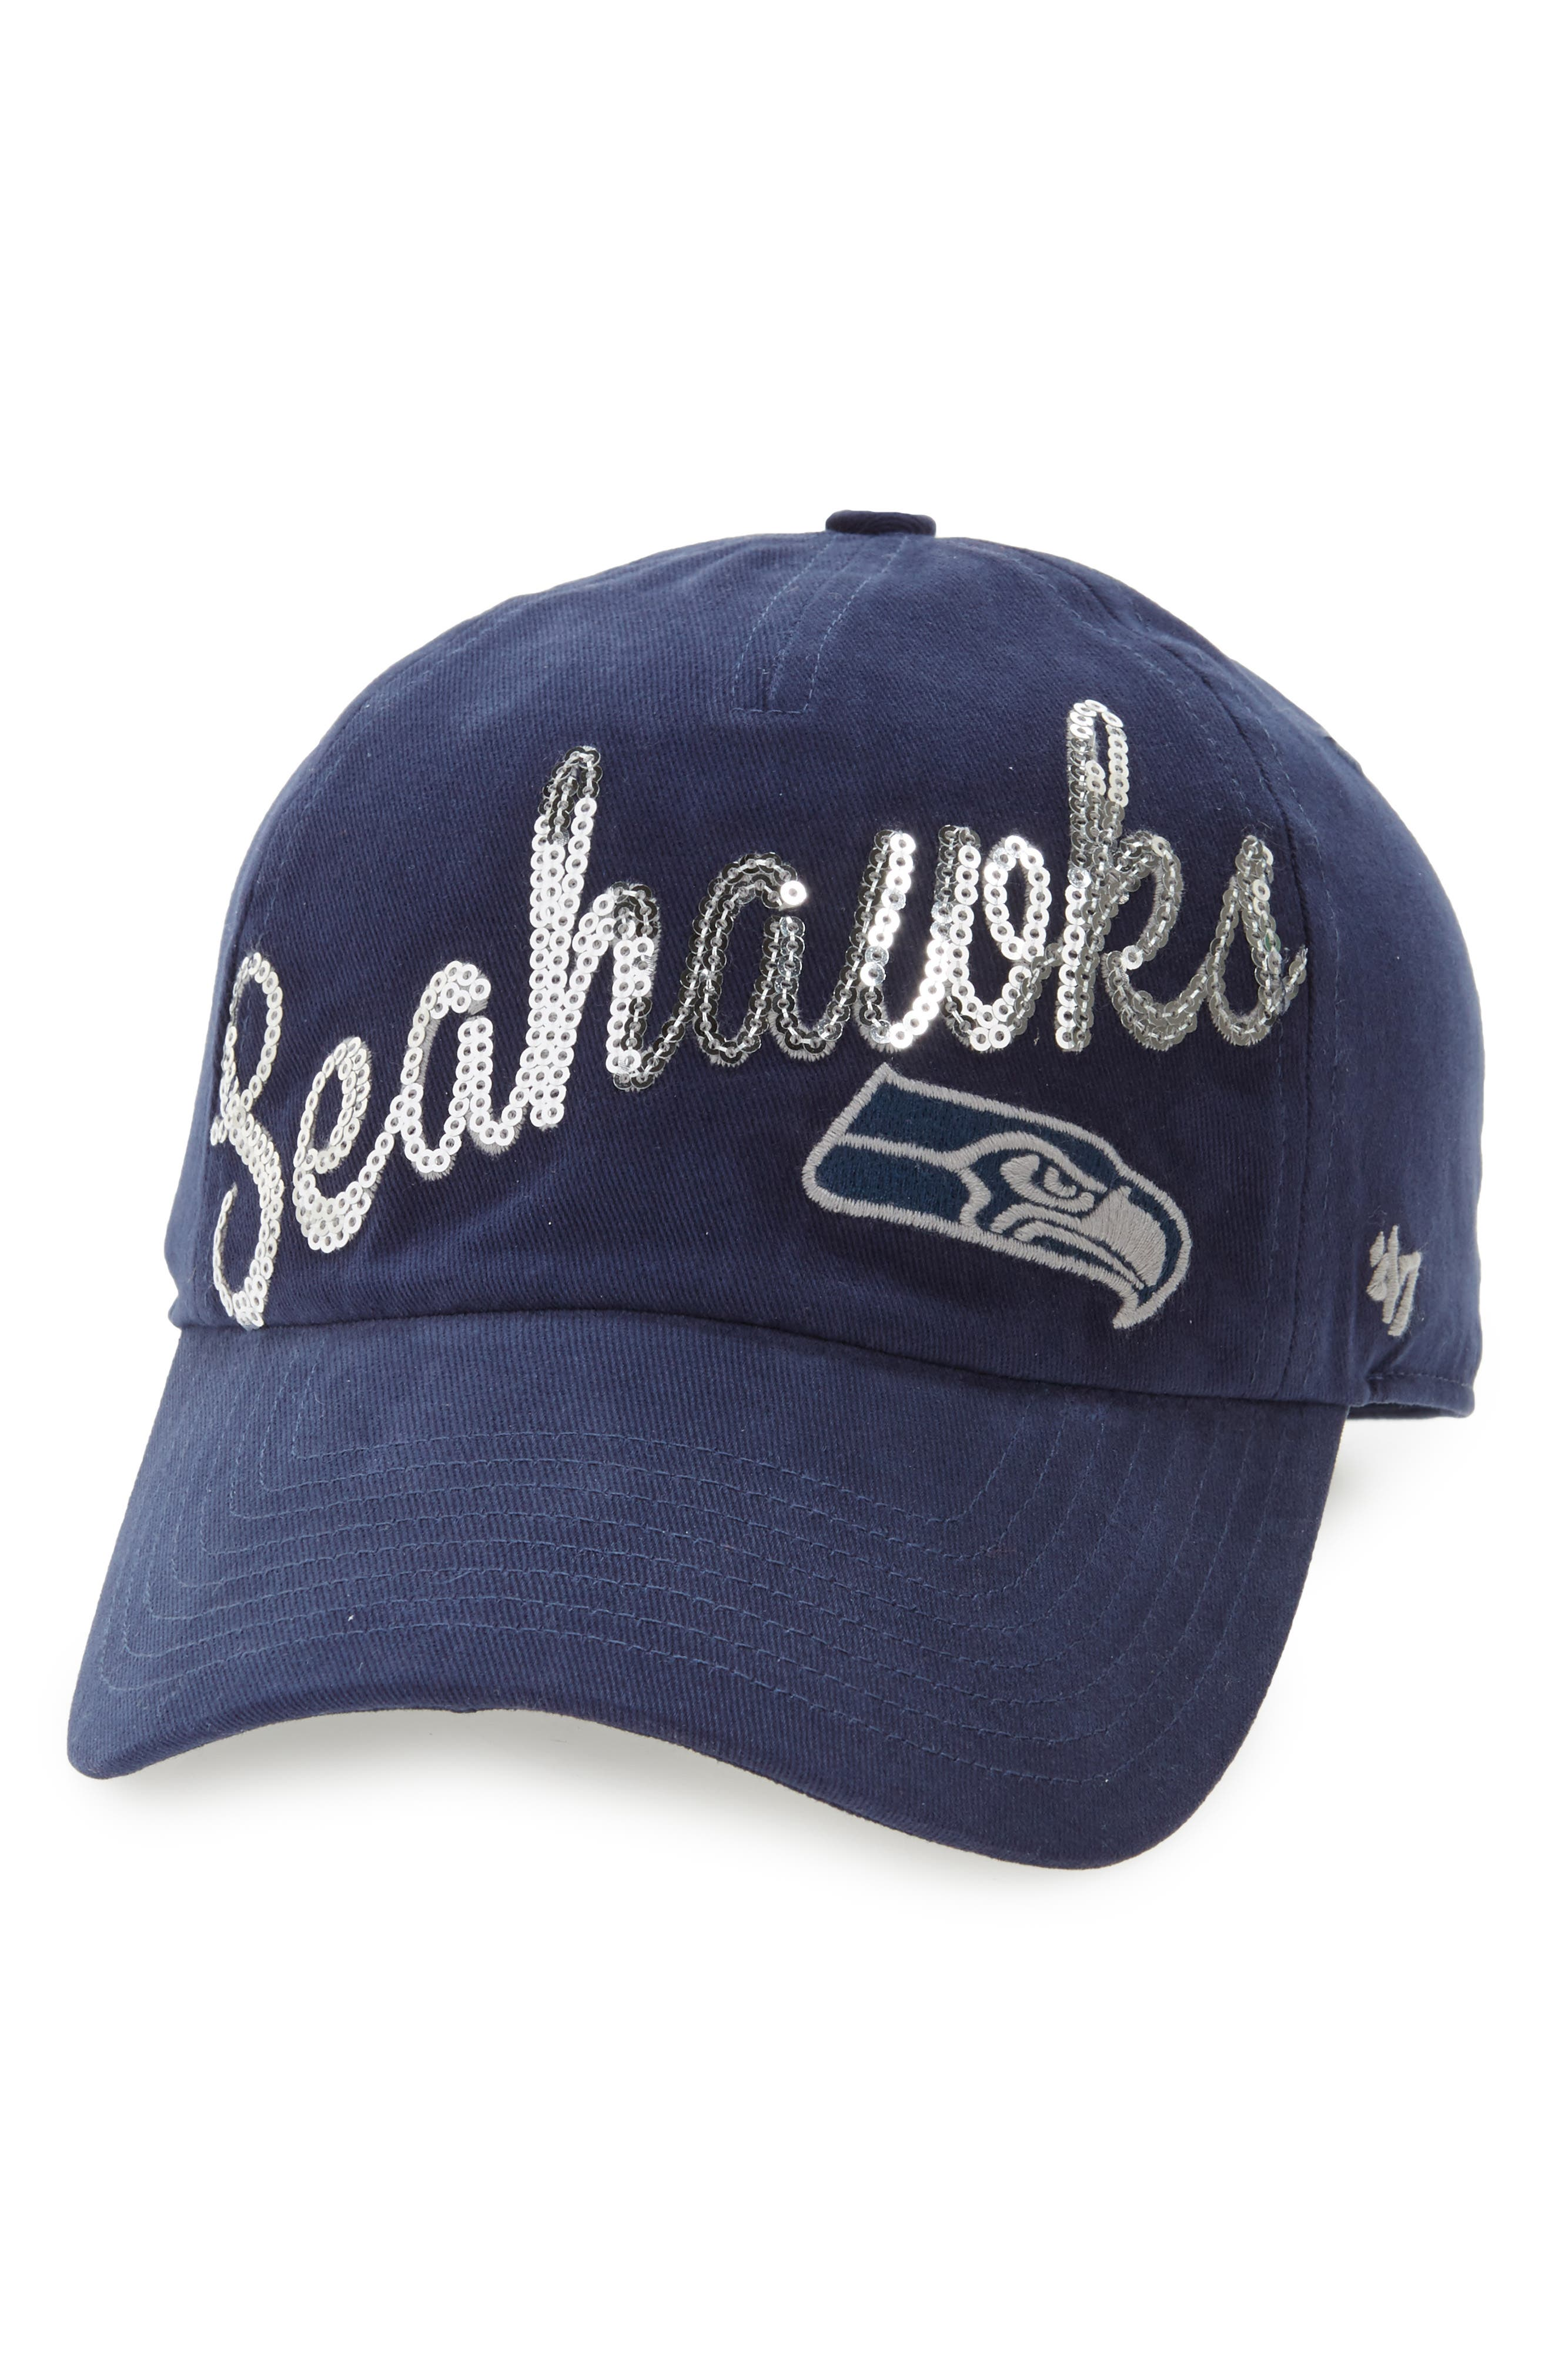 Alternate Image 1 Selected - '47 Seattle Seahawks Sparkle Cap